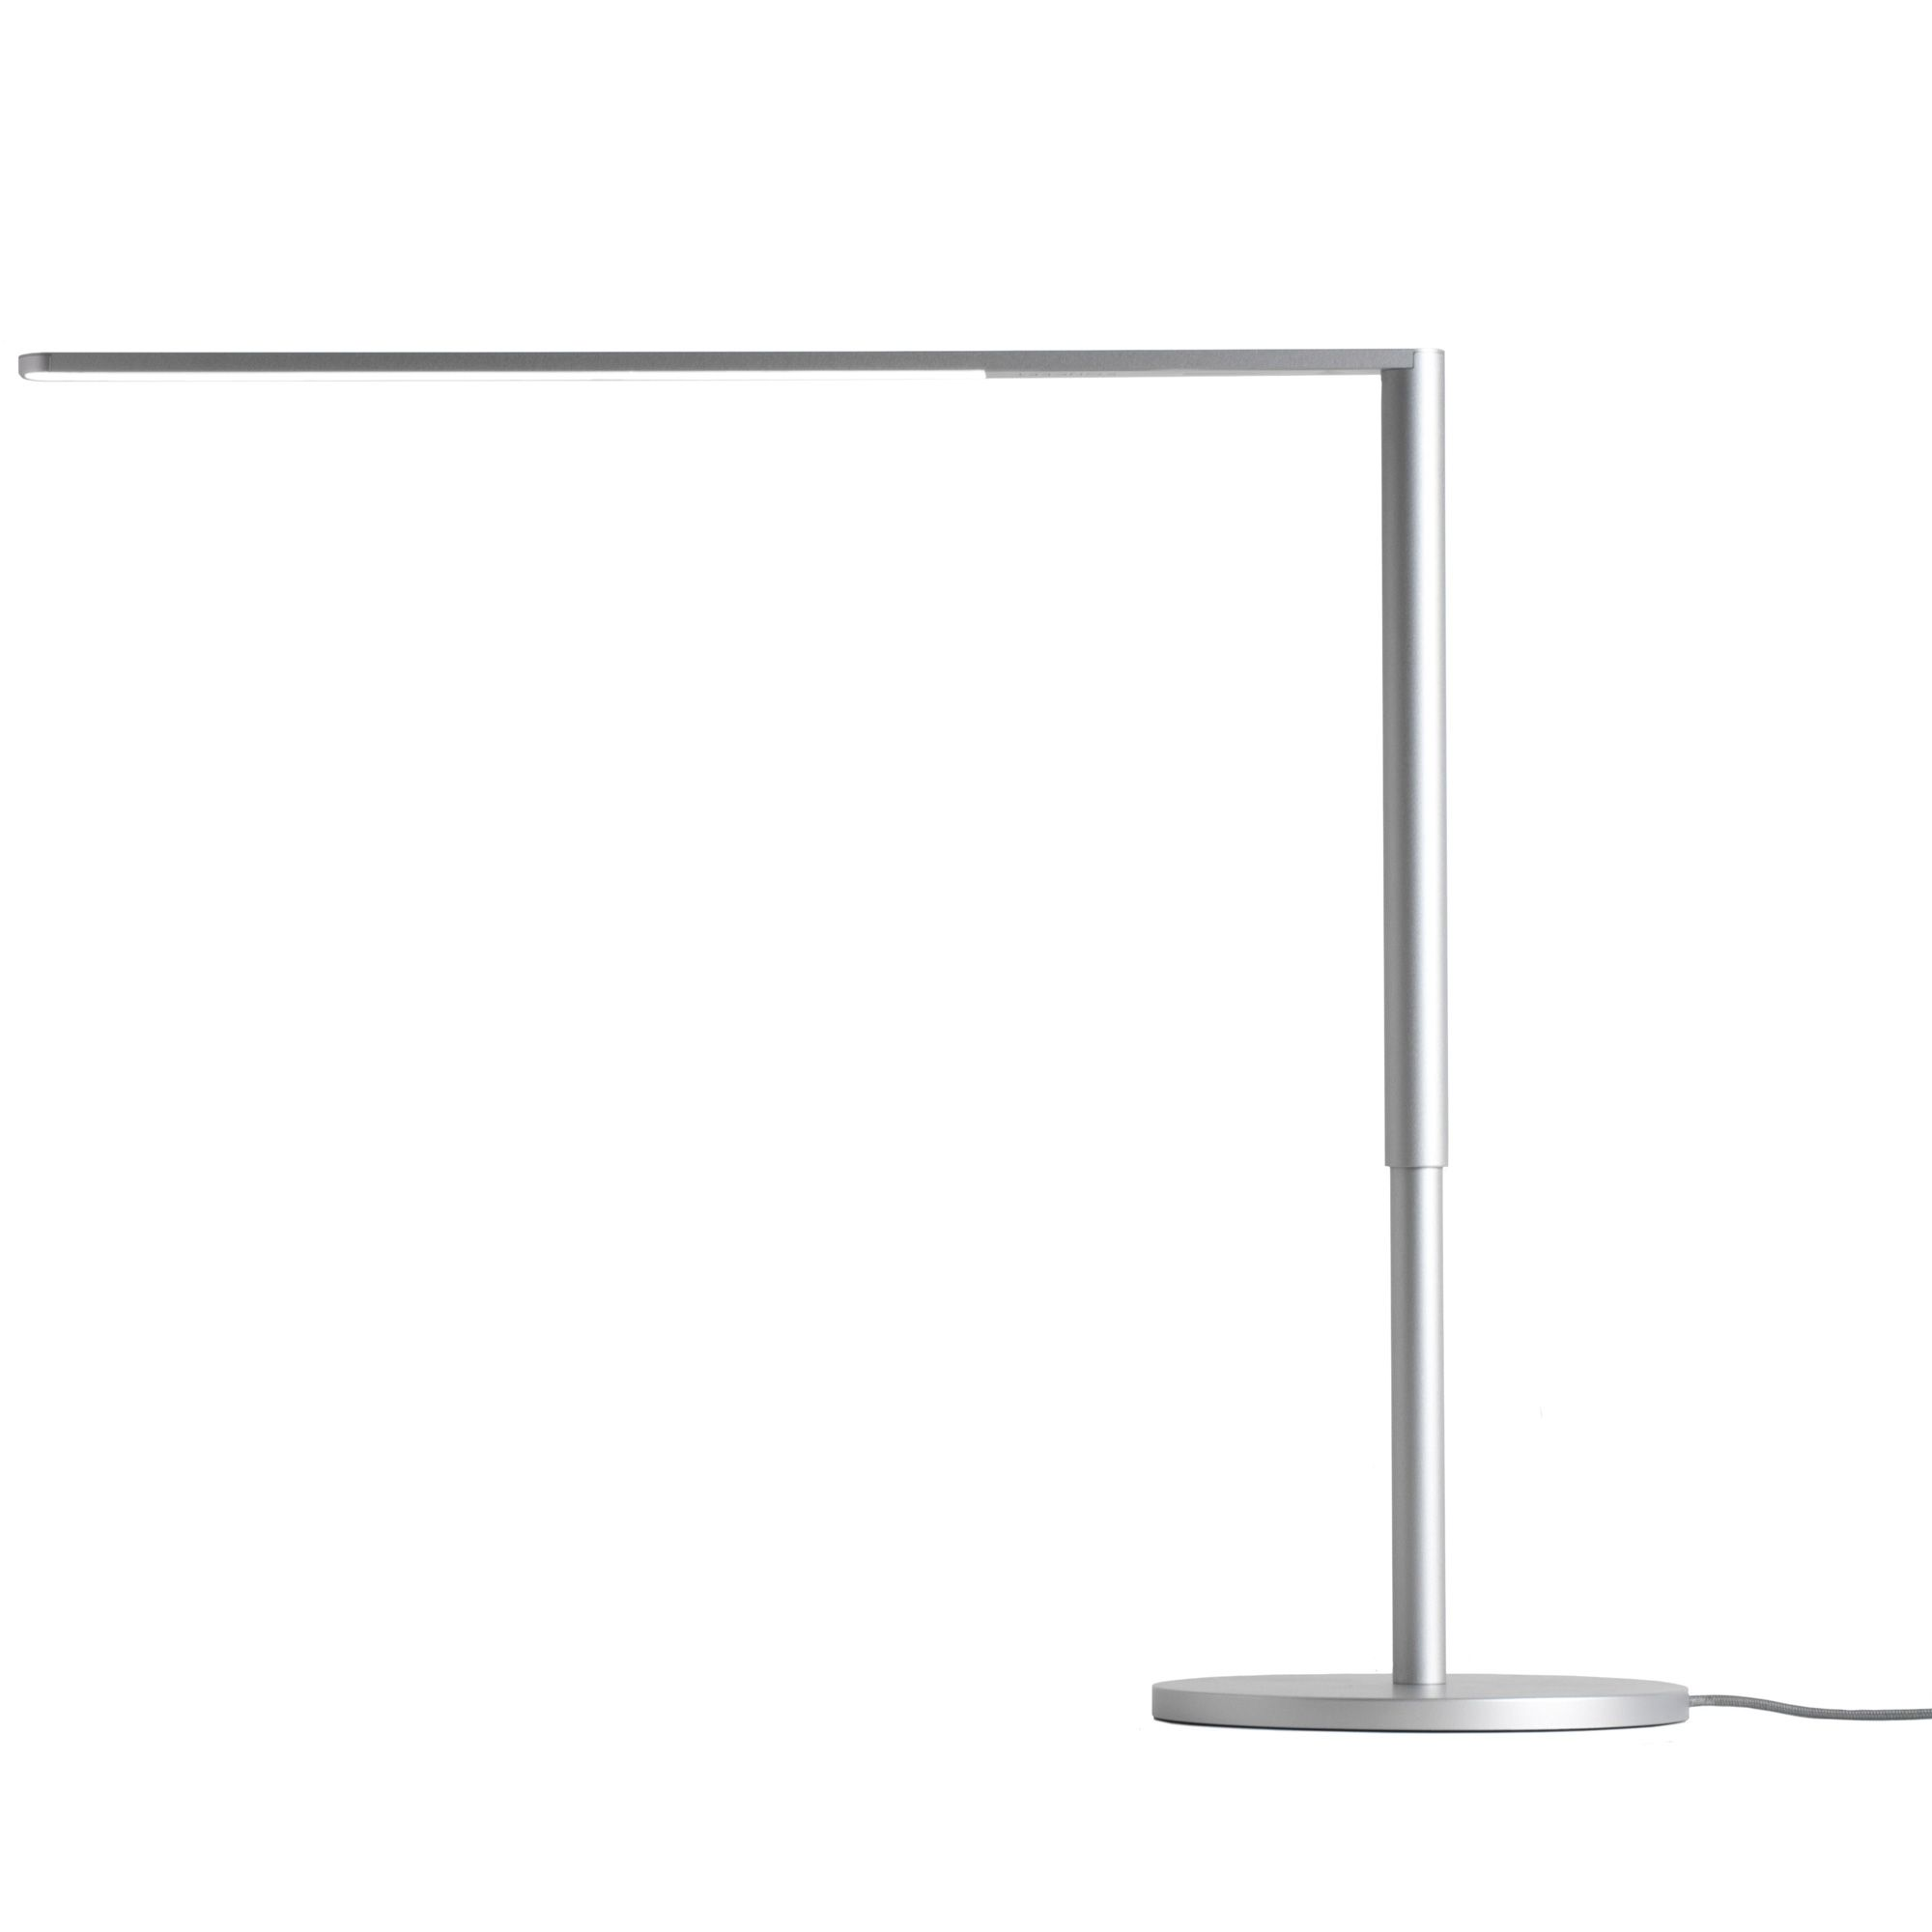 Lady7 Tunable Desk Lamp By Koncept Lighting L7 Sil Dsk In 2020 Lamp Contemporary Desk Lamps Modern Desk Lamp